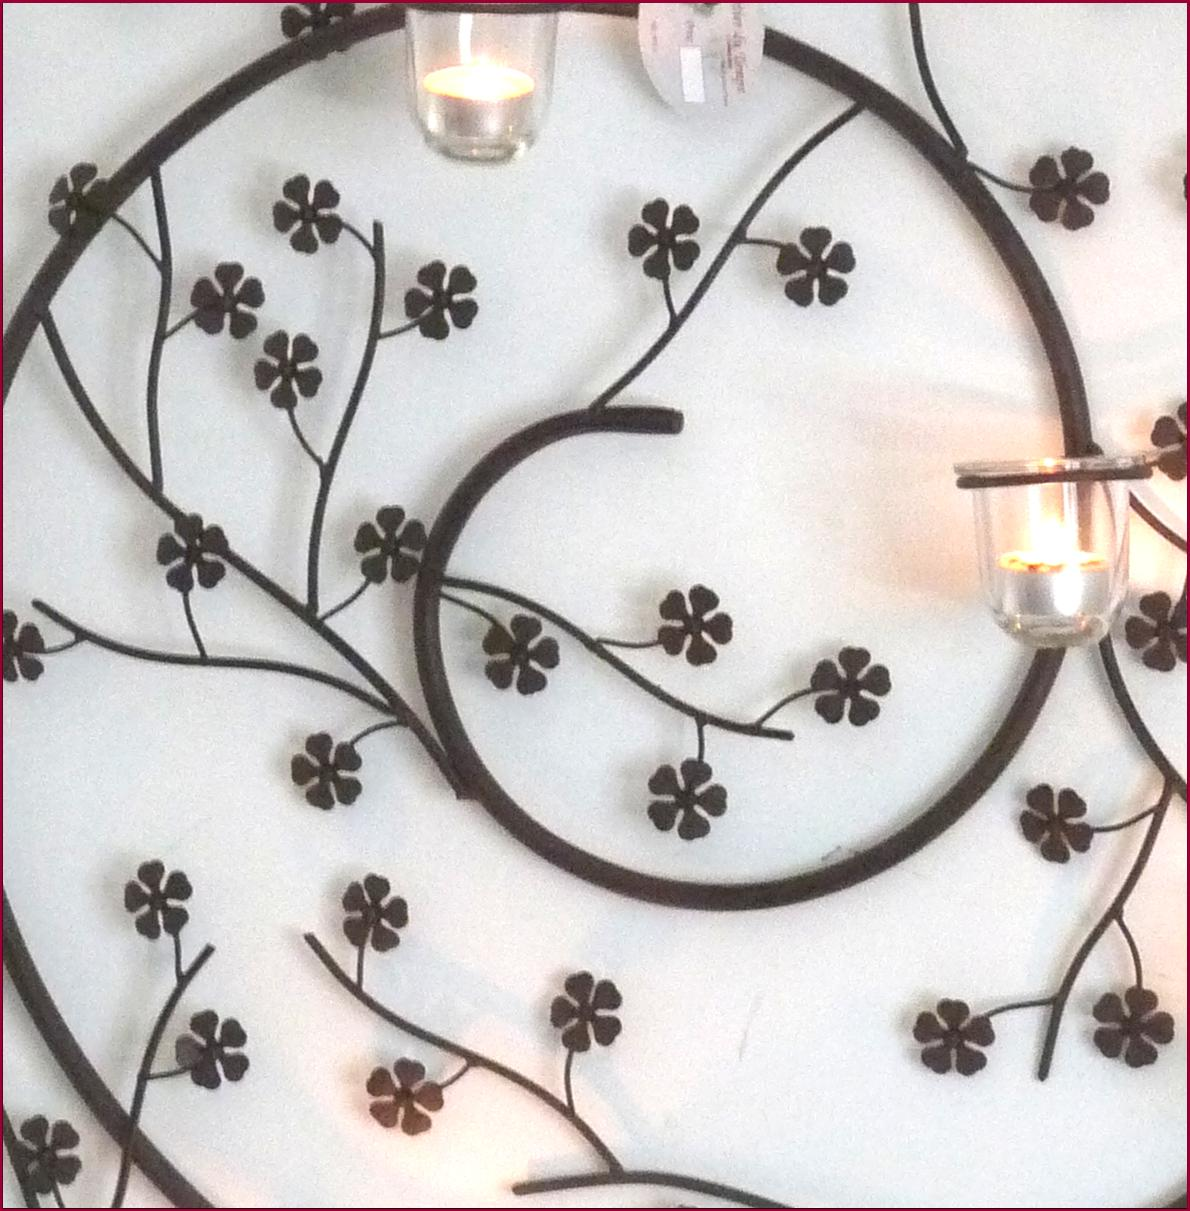 Applique Fronton Grille Bougeoir Chandelier Mural A Bougie